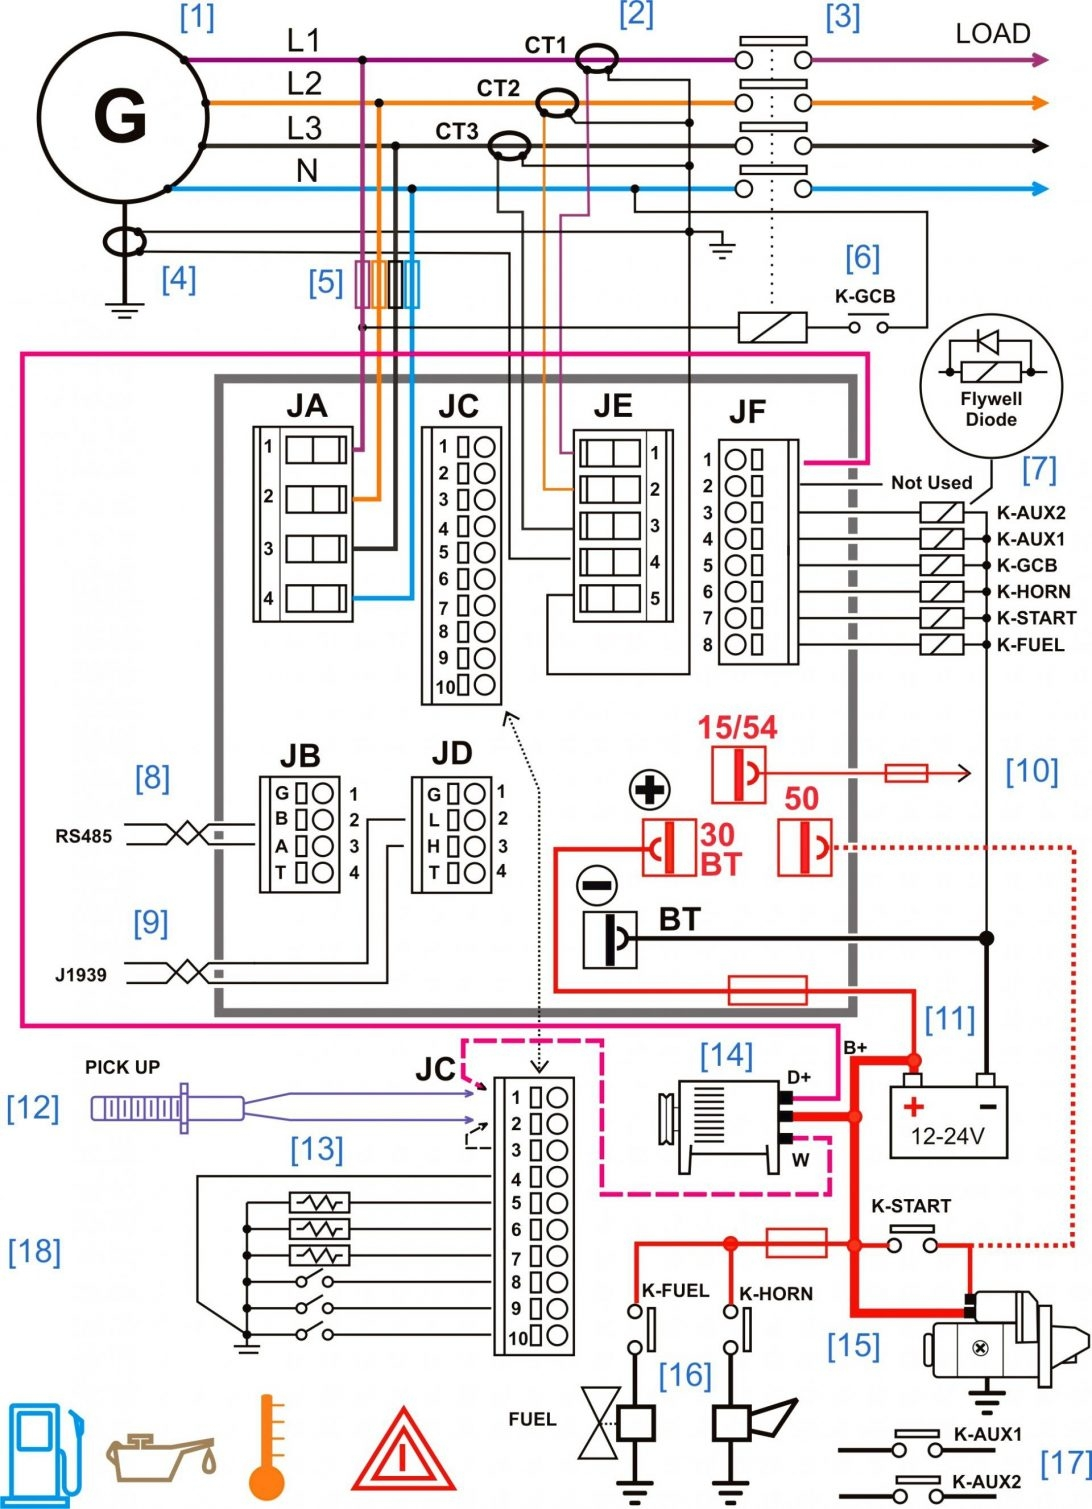 basic low voltage wiring fire alarm installation wiring diagram | free wiring diagram